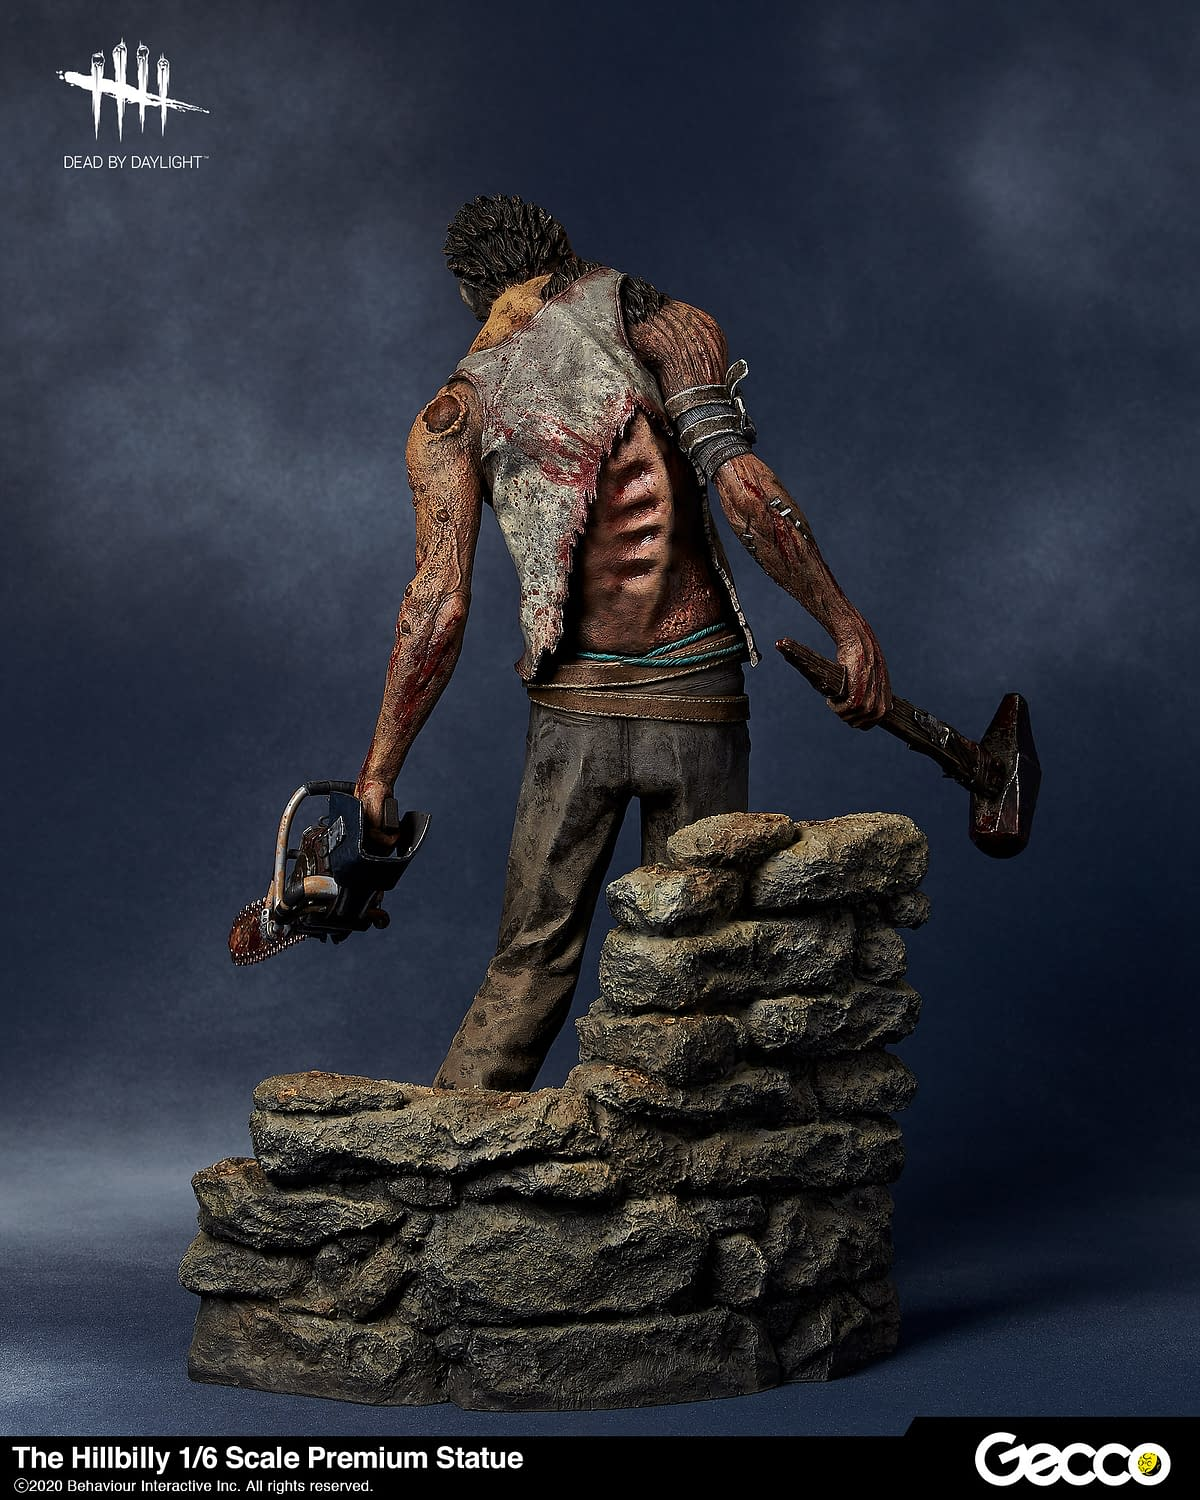 Gecco-Dead-by-Daylight-Hillbilly-Statue-006